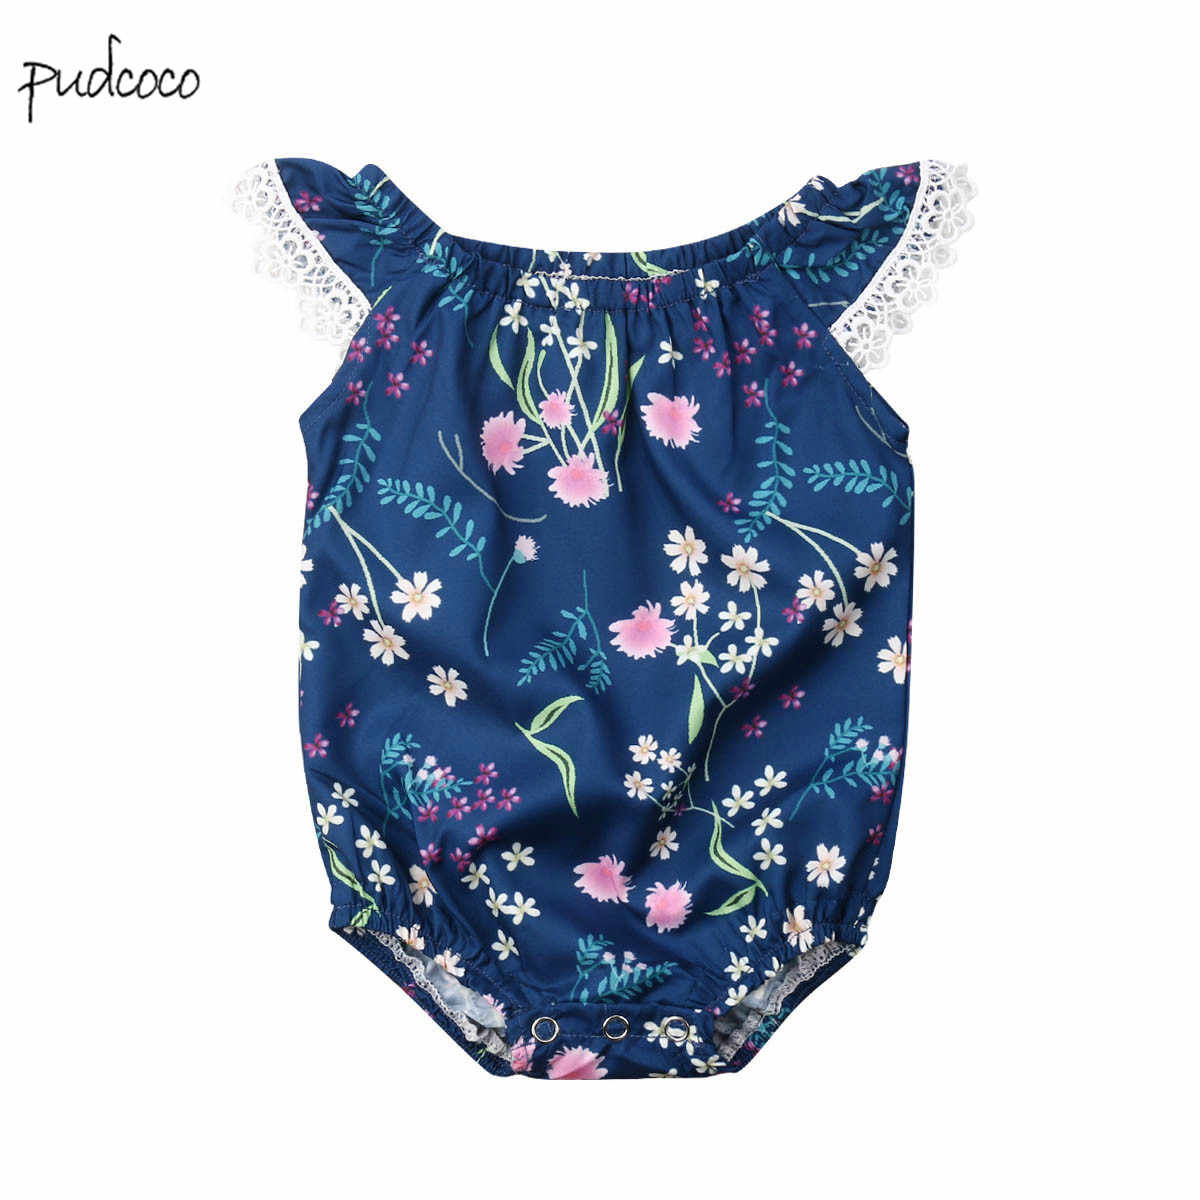 Pudcoco New Brand Toddler Baby Girls Lace Floral  Bodysuit Jumpsuit Outfits  Sunsuit